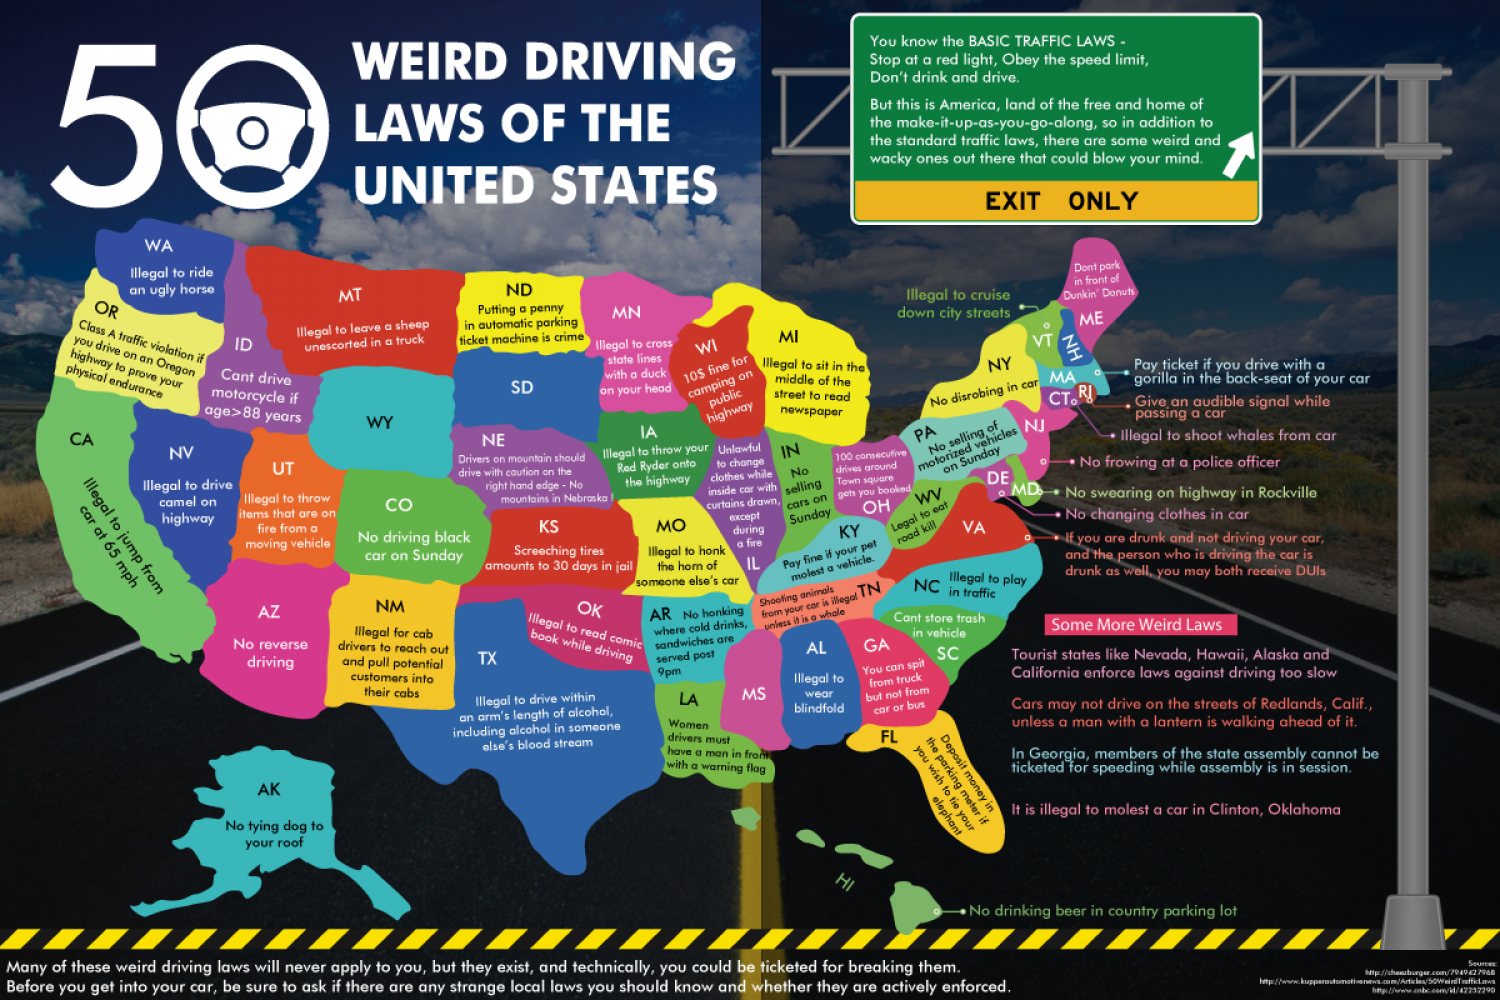 50 Weird Driving Laws of the United States Infographic